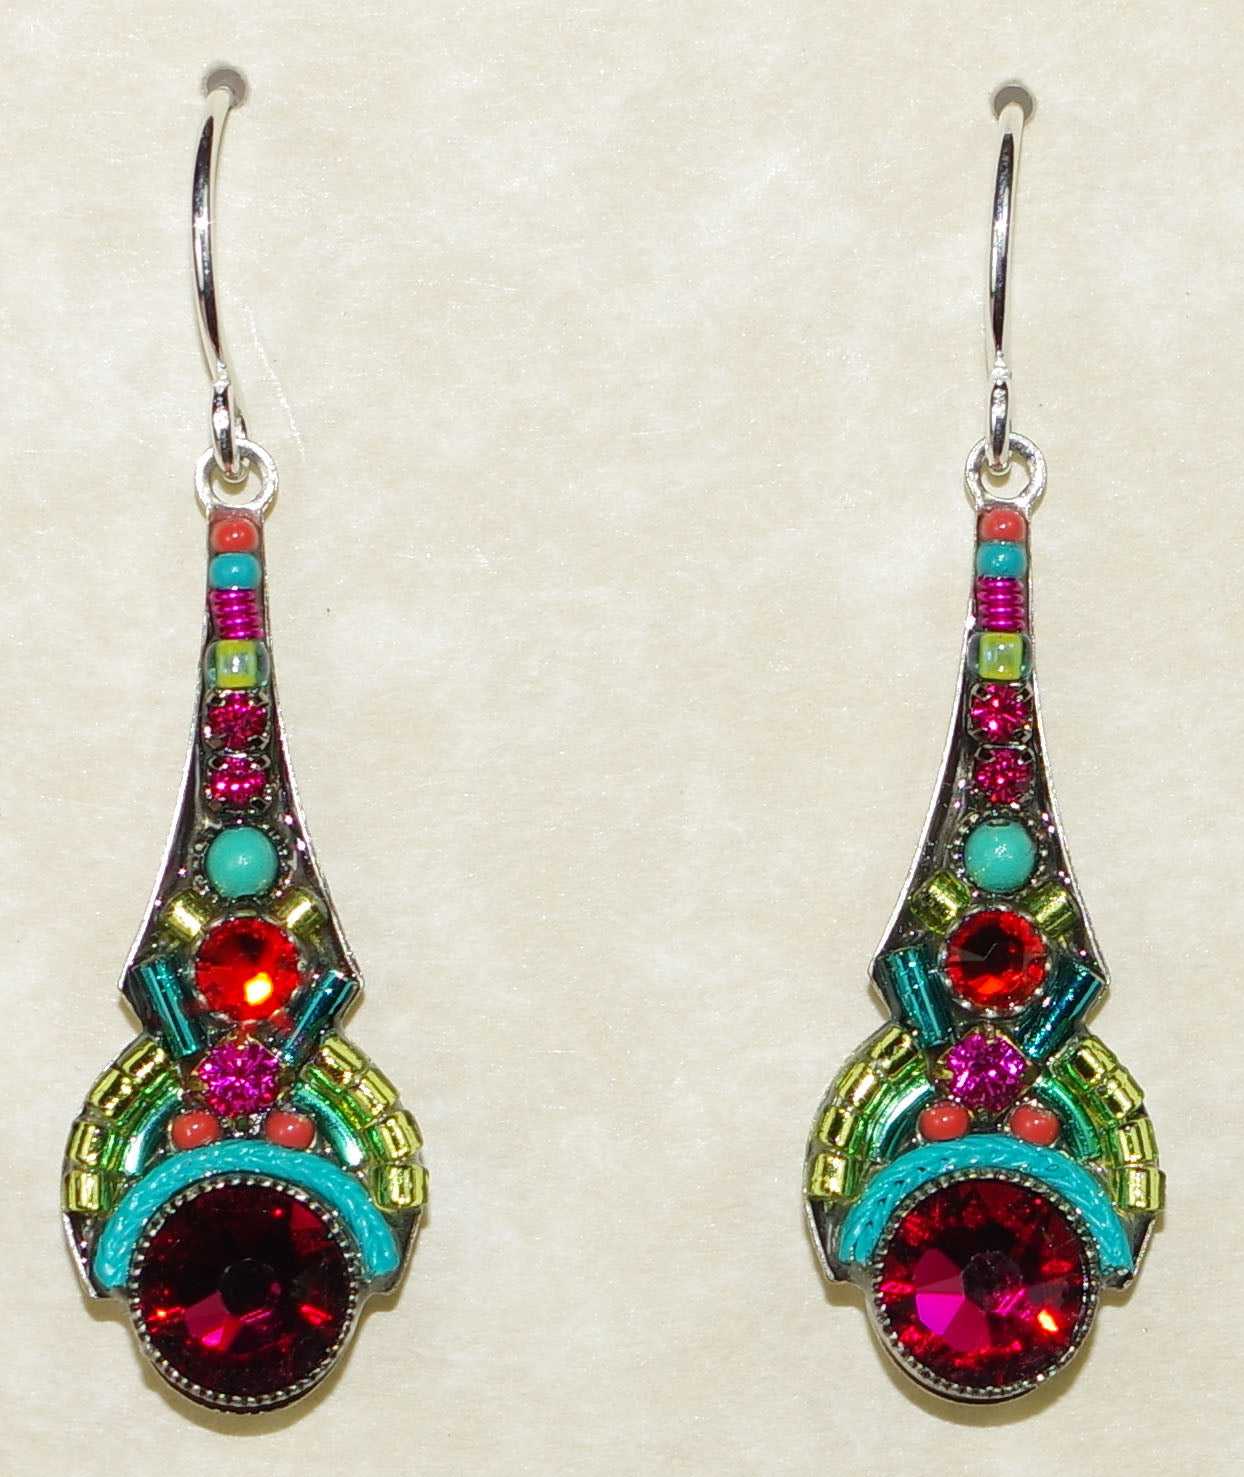 earrings drop kempen in van art nouveau jewelry sterling with silver swarovski crystals